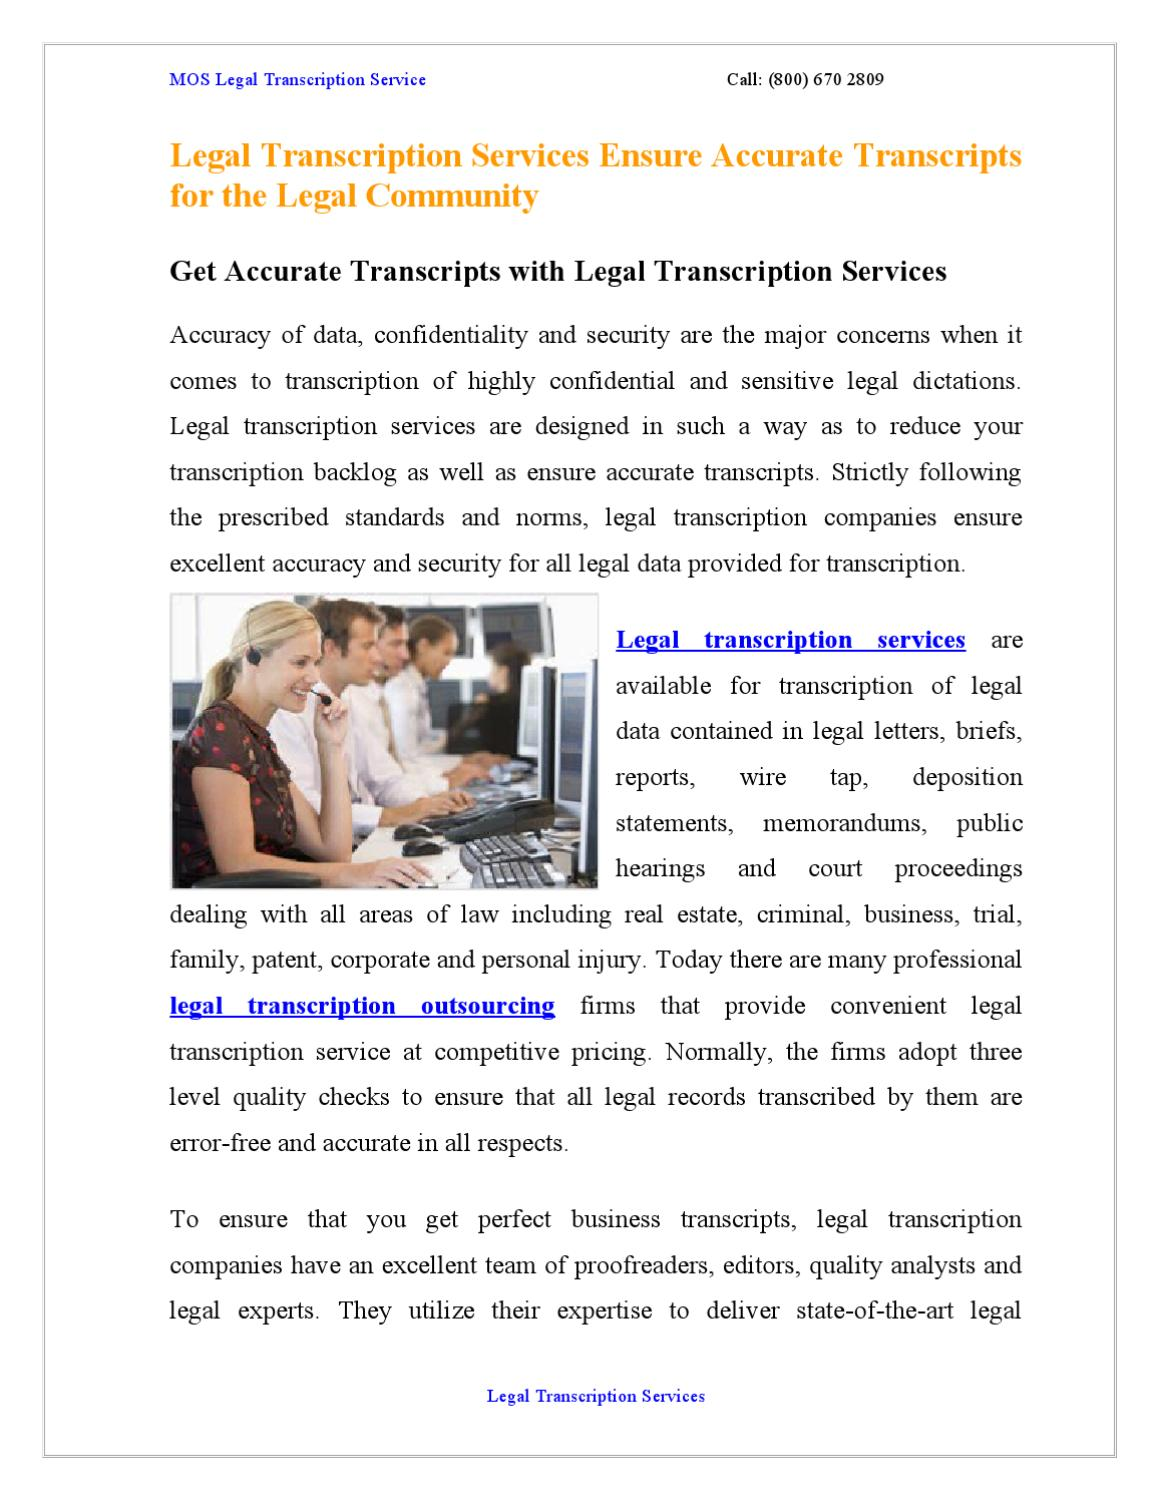 Legal Transcription Services Ensure Accurate Transcripts for